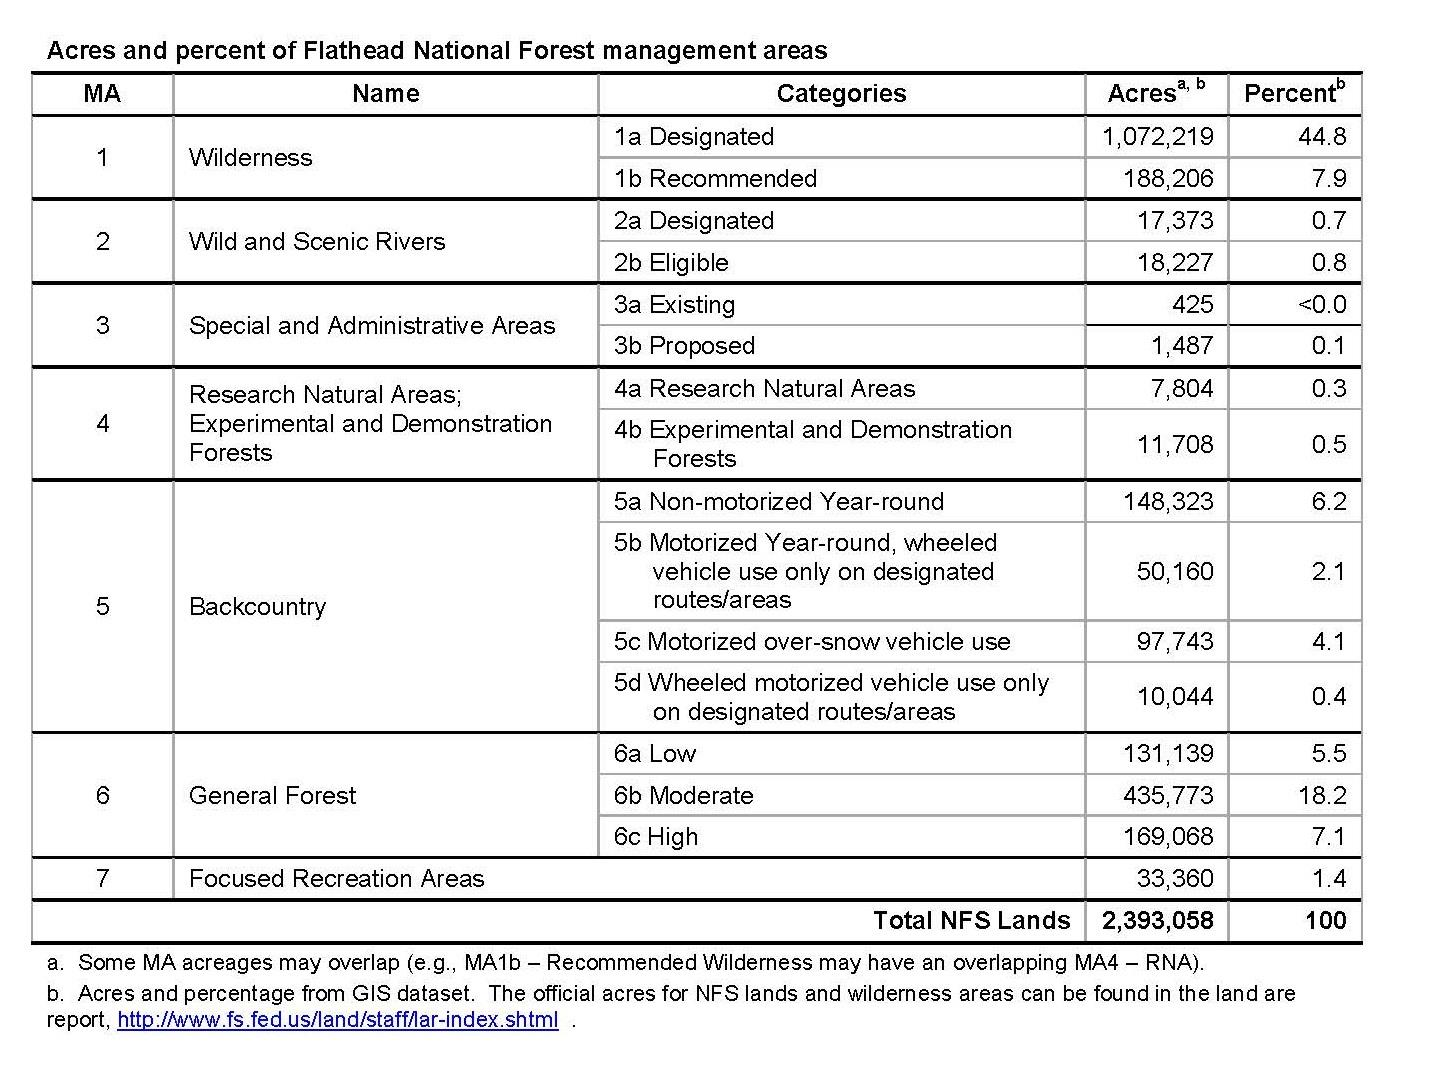 Acres and Percent of Flathead National Forest Management Areas